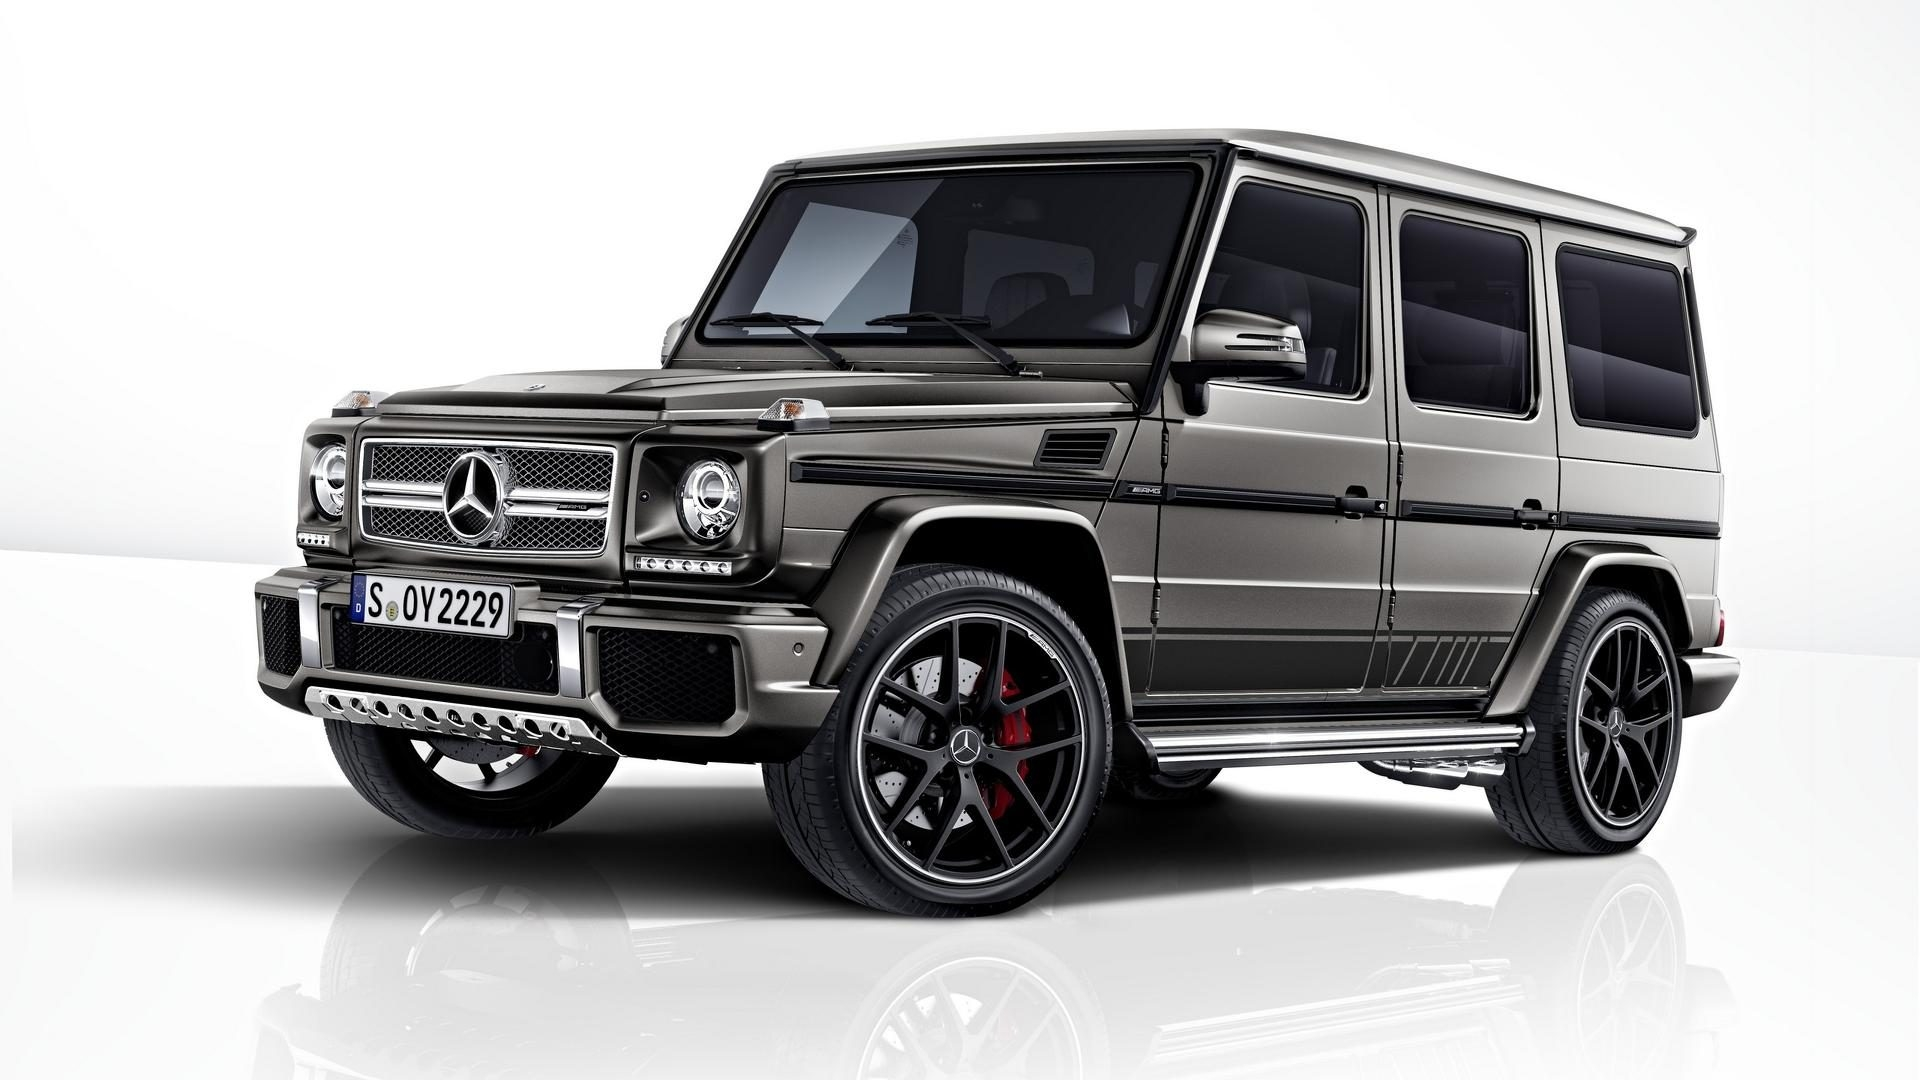 2020 mercedes-amg g63    g65 price and review - mercedes g amg 65   2169327